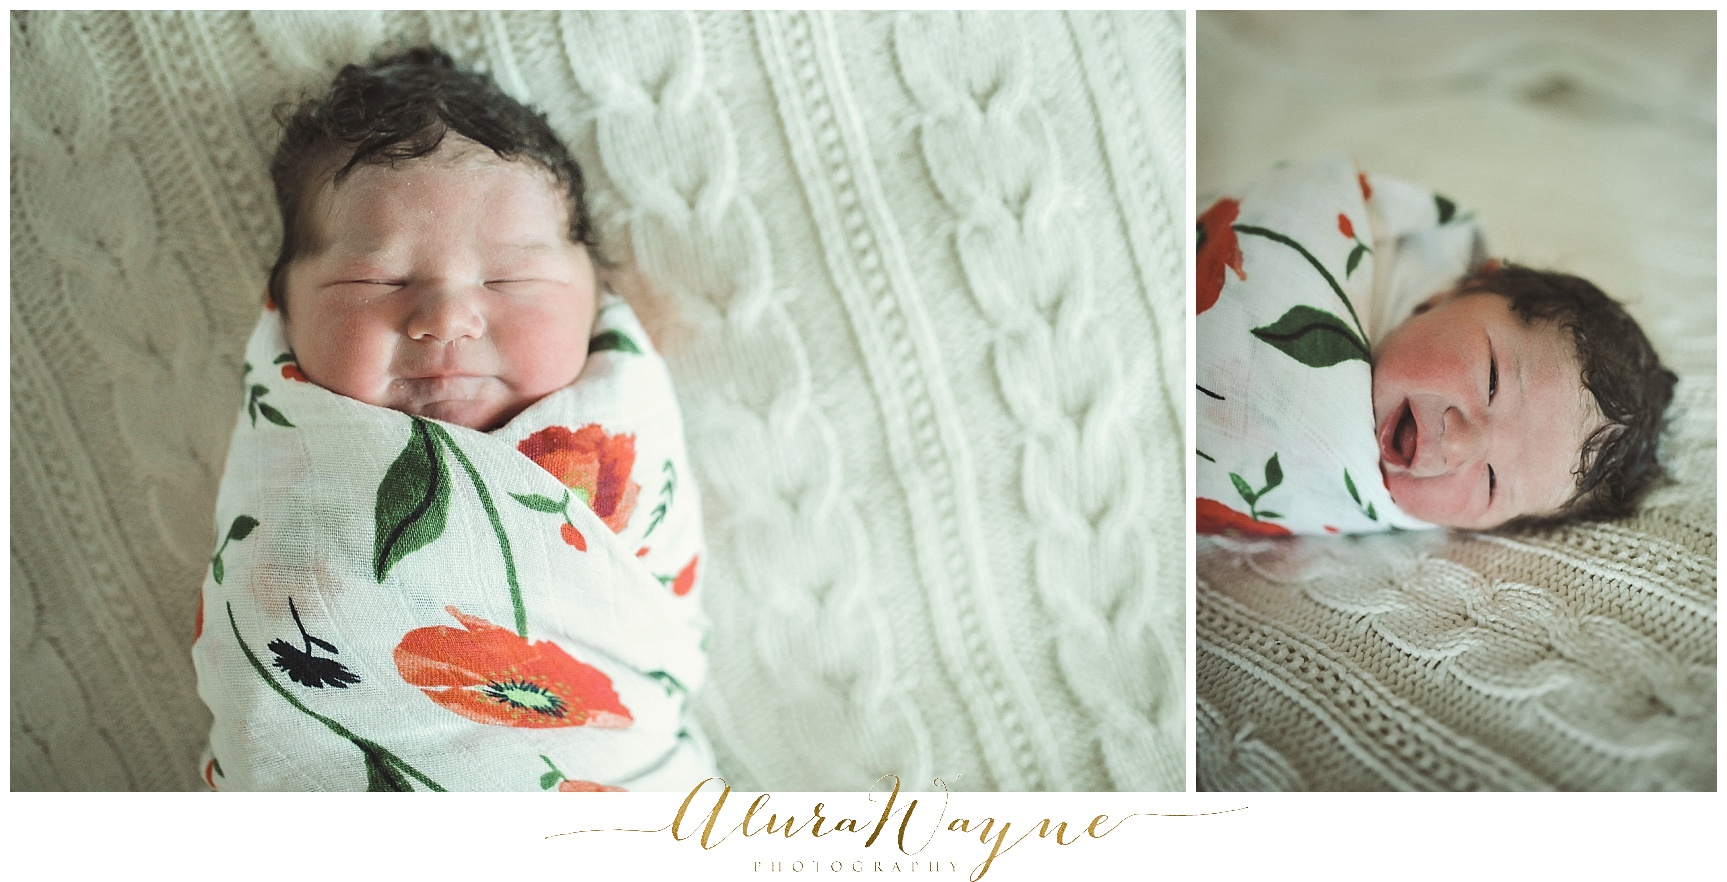 nashville tn birth photographer baby and co alurawayne photography